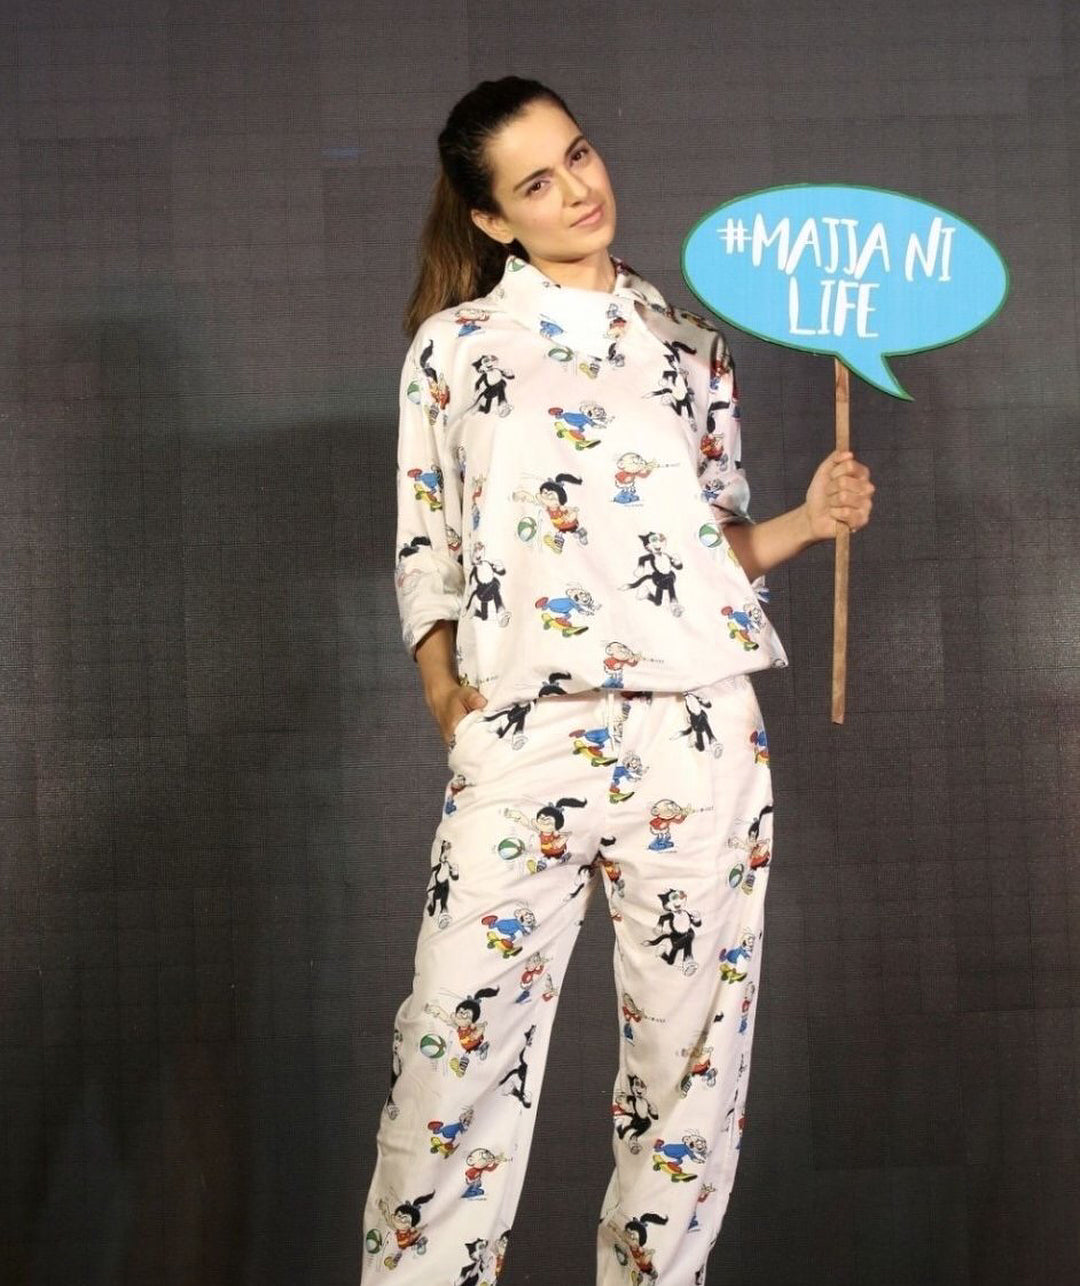 Kangana Ranaut Just Worked This Cute Stella Mccartney Dress And We're Totally Stealing It